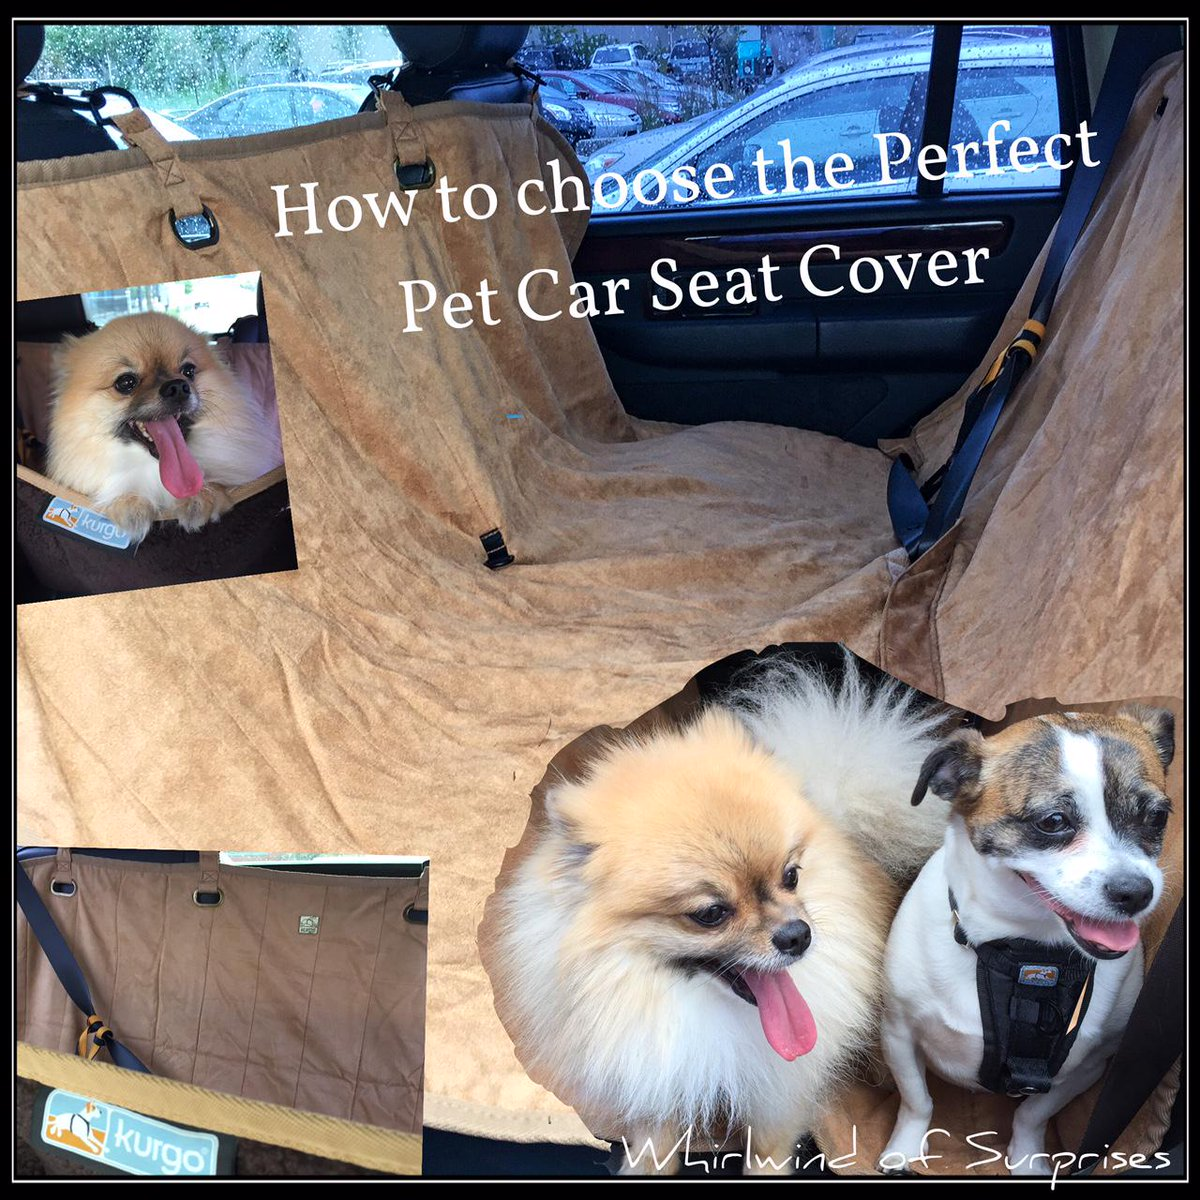 Tips for choosing a car seat cover for dogs